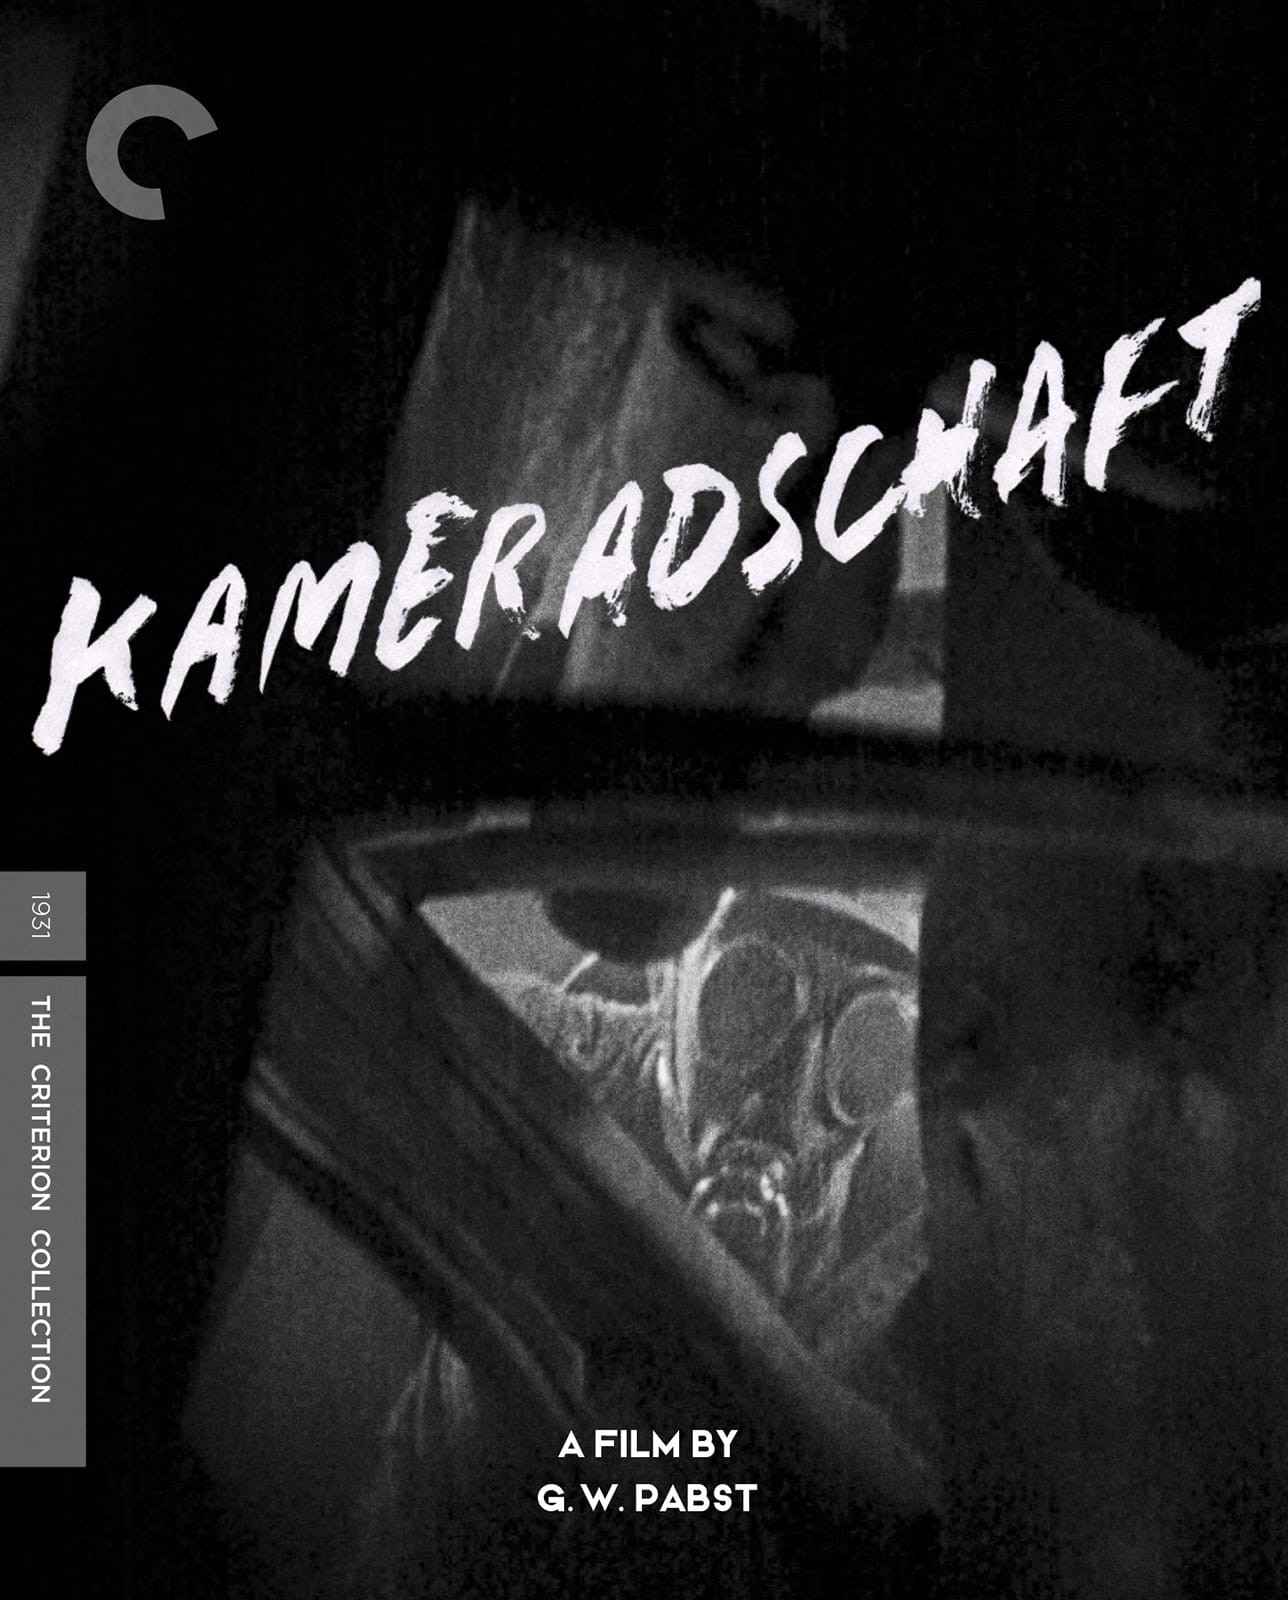 Kameradschaft (The Criterion Collection)(1931) Blu-ray